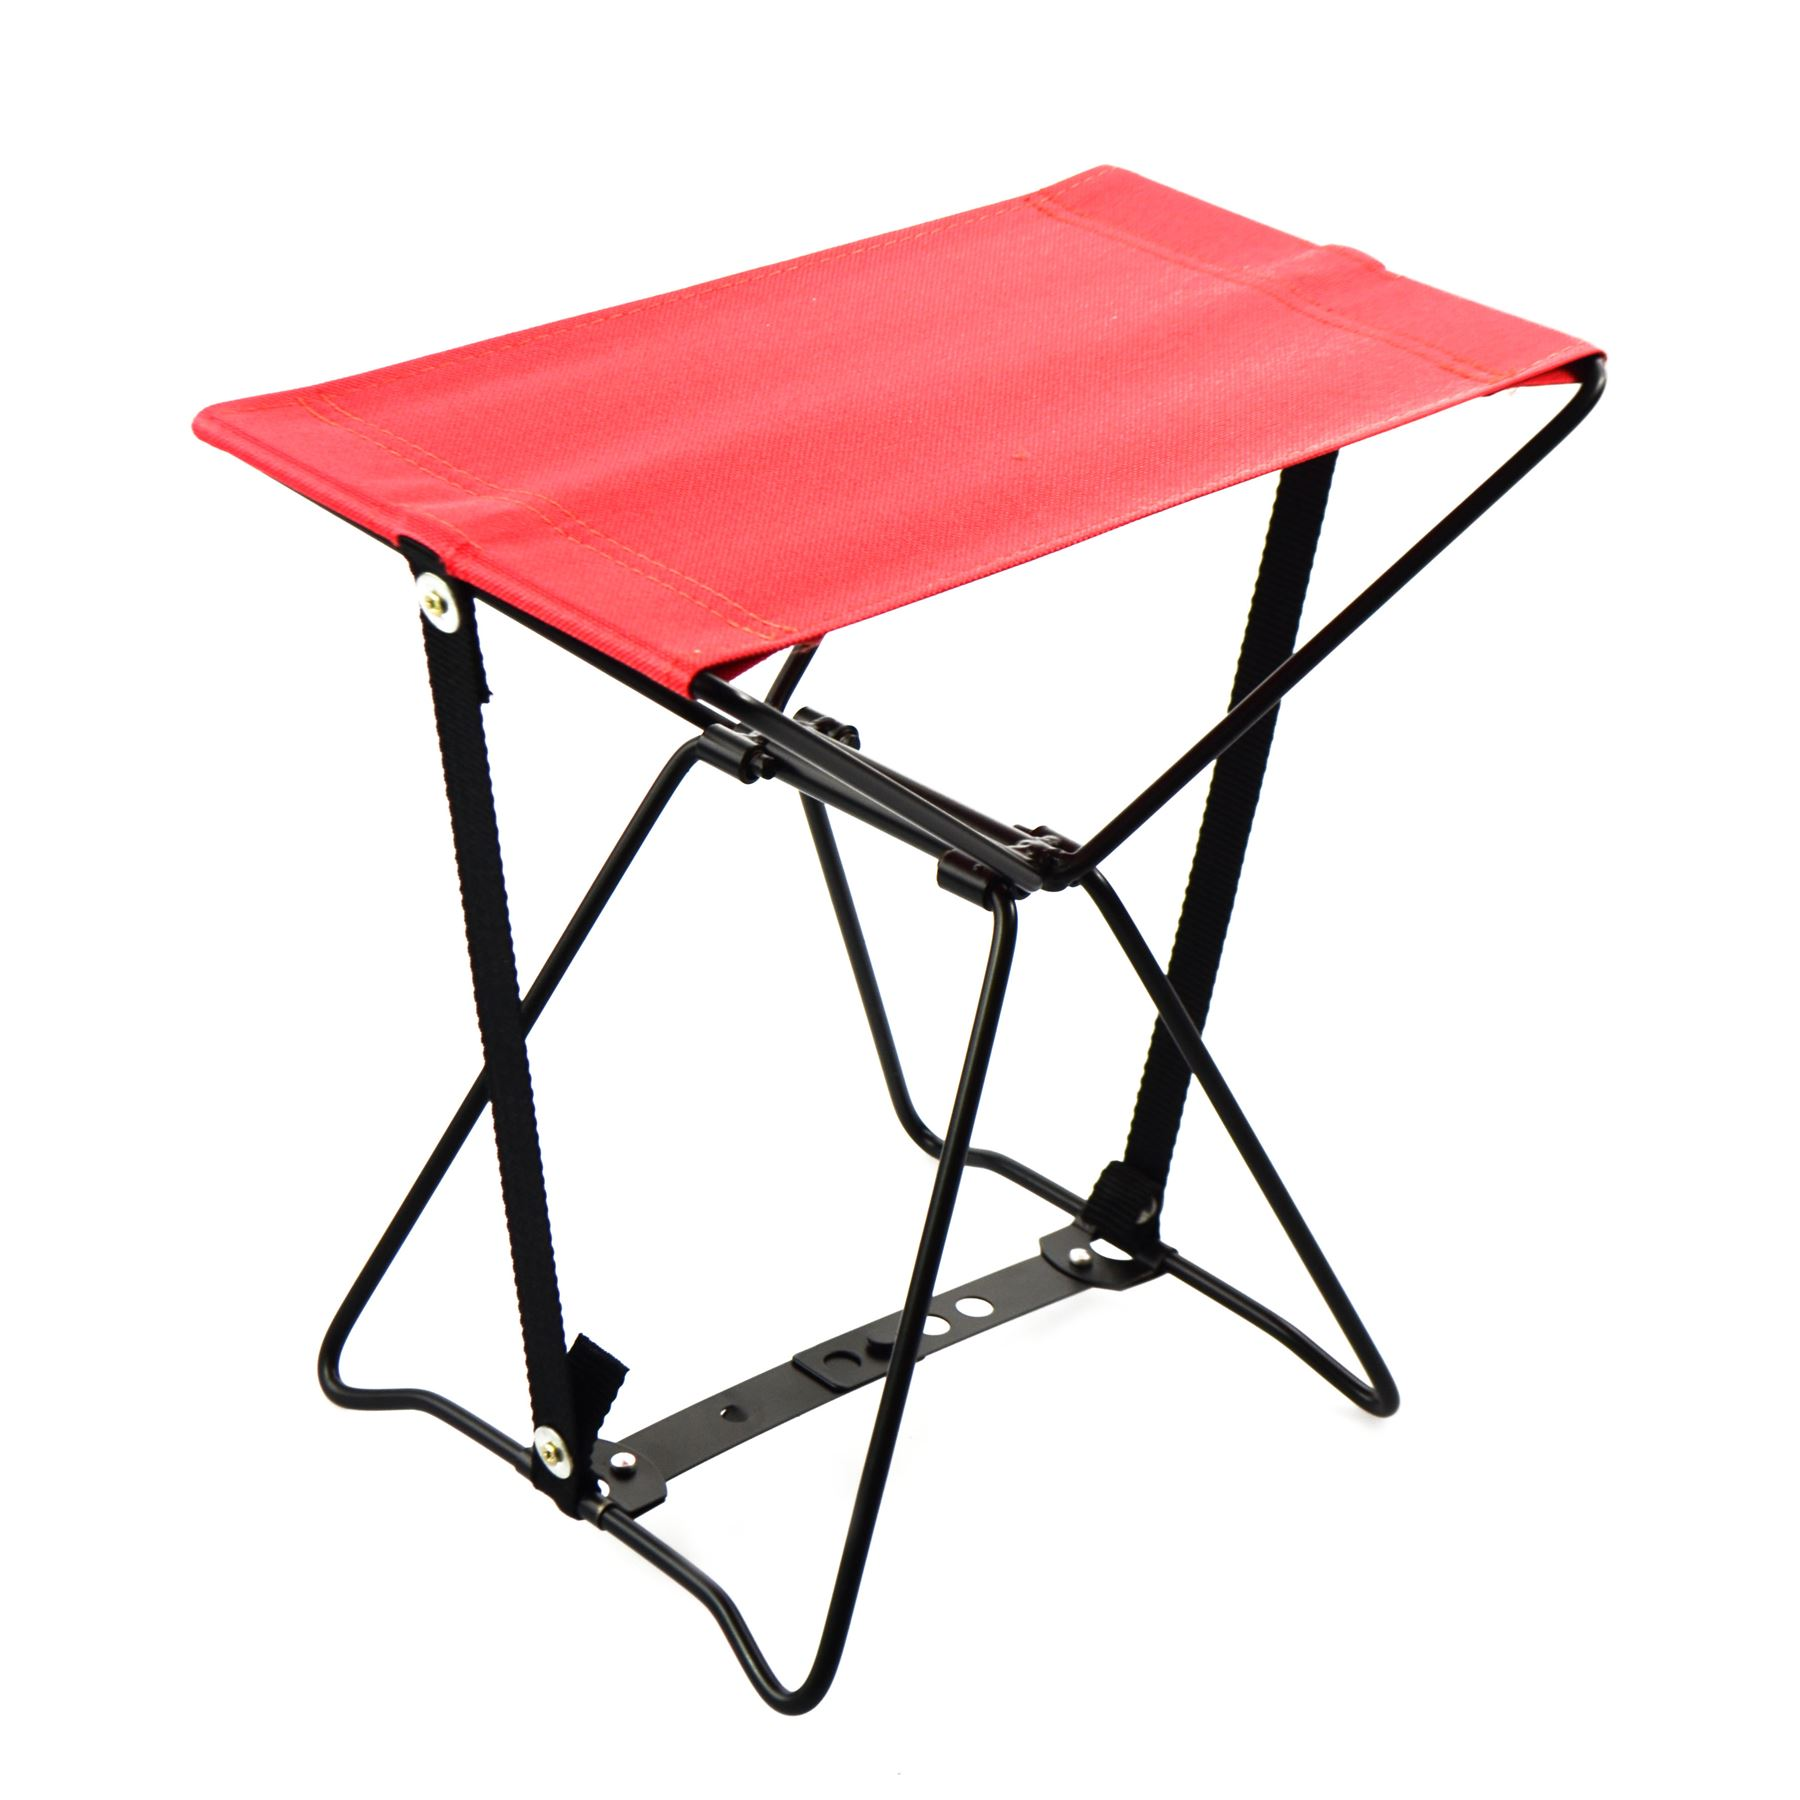 Fold Up Chairs Folding Camping Pocket Chair Collapsible Garden Outdoor